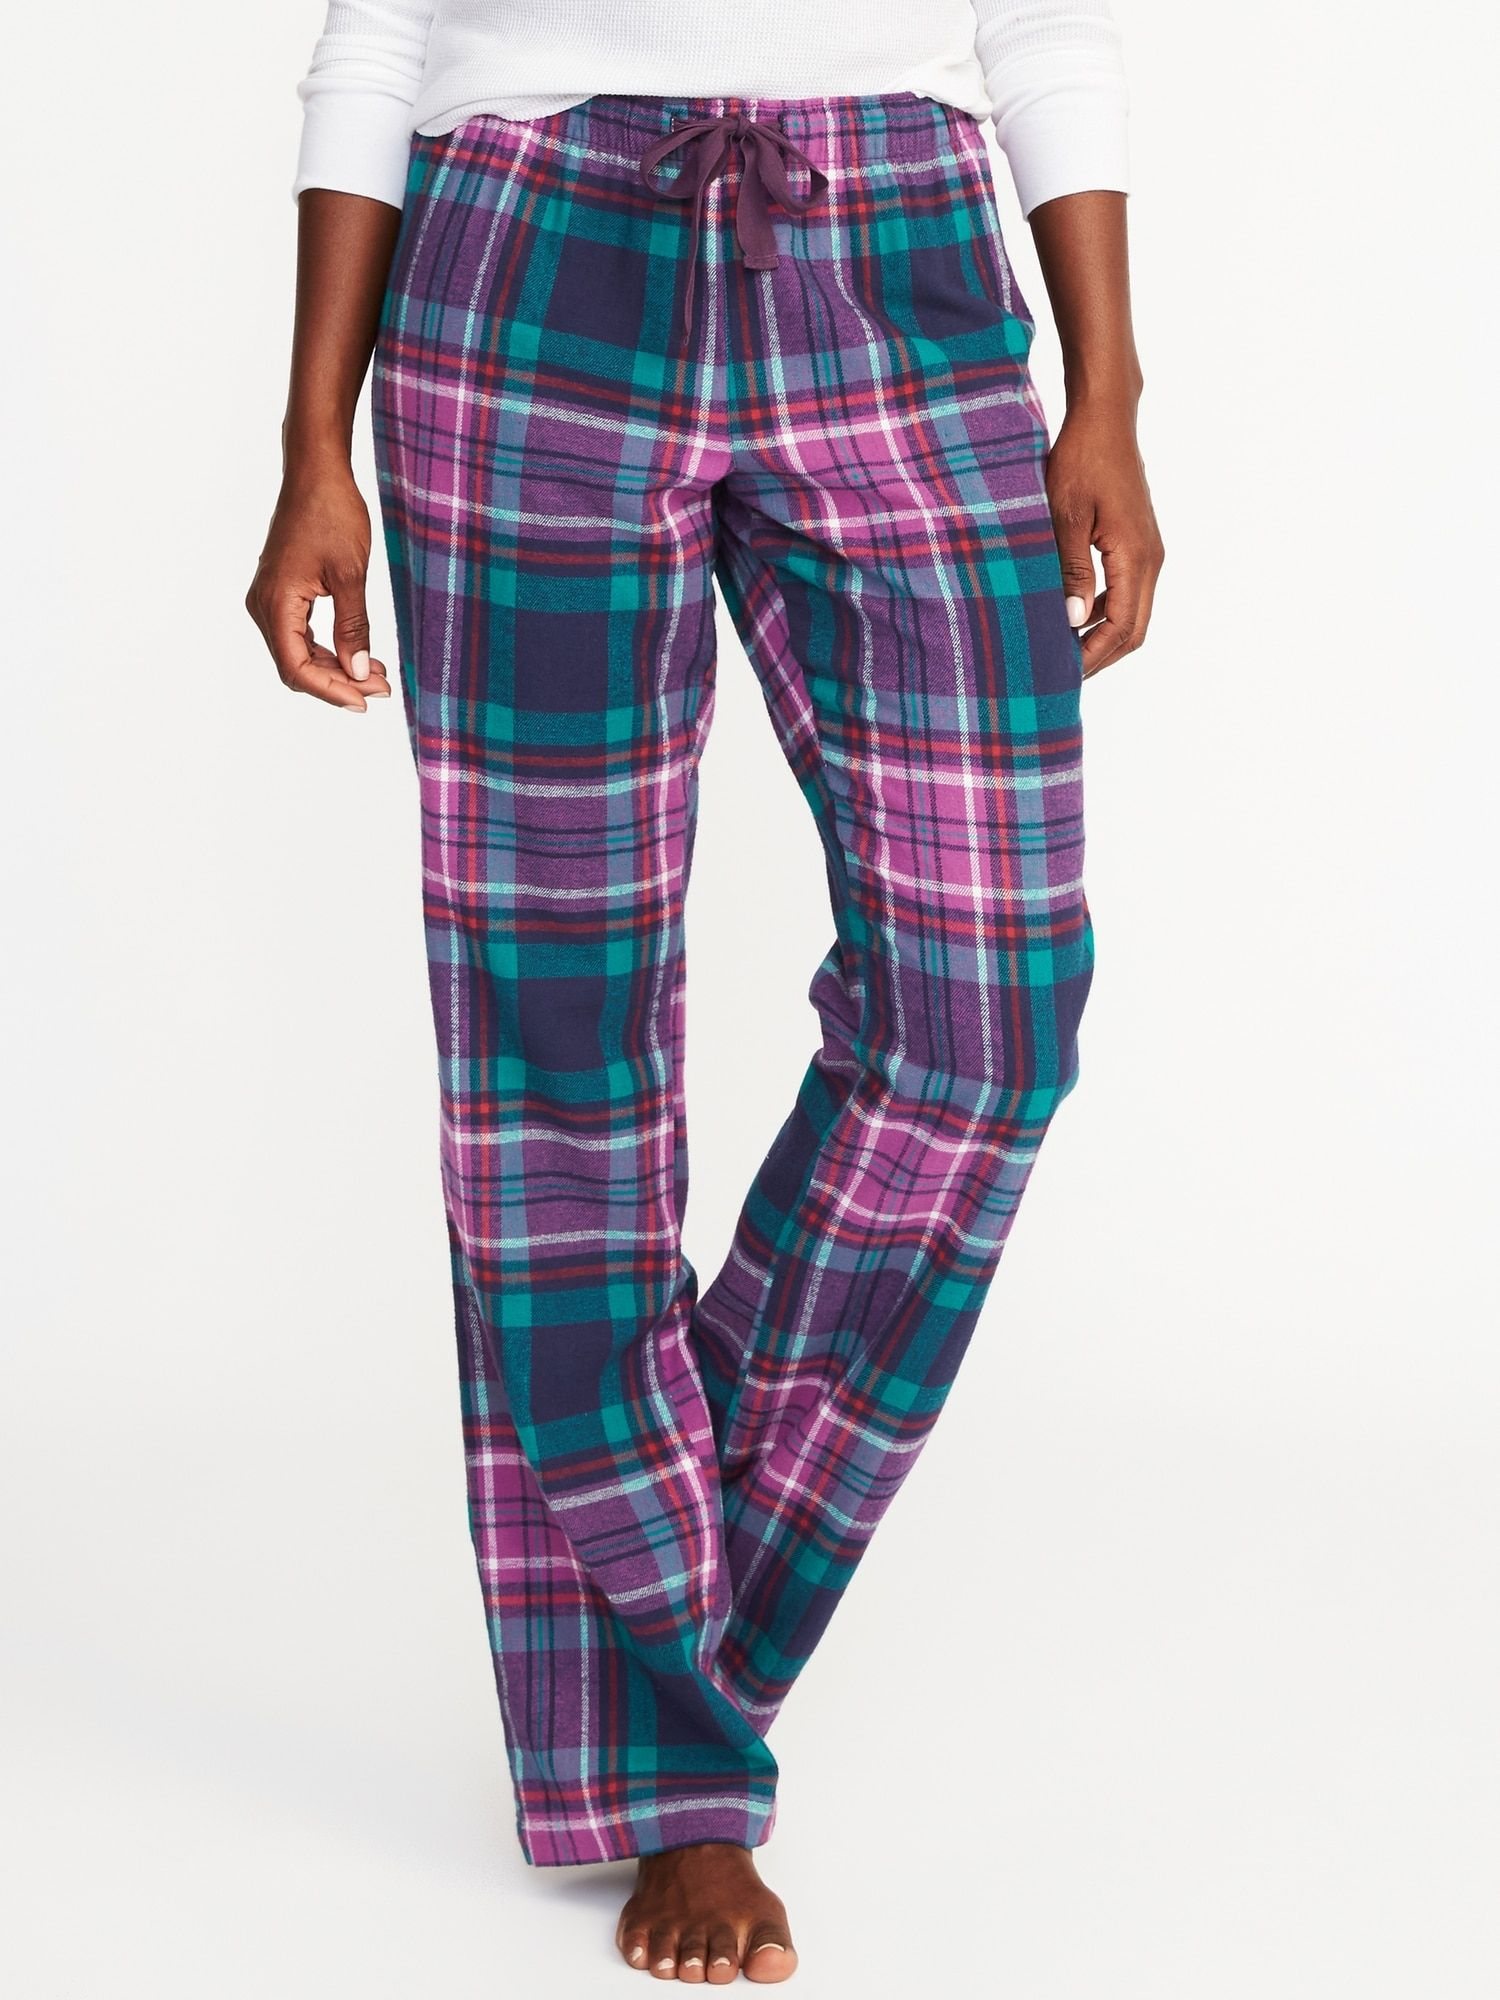 85459bb0c2b7b Patterned Flannel Sleep Pants for Women in Blue and Purple Plaid | Old Navy